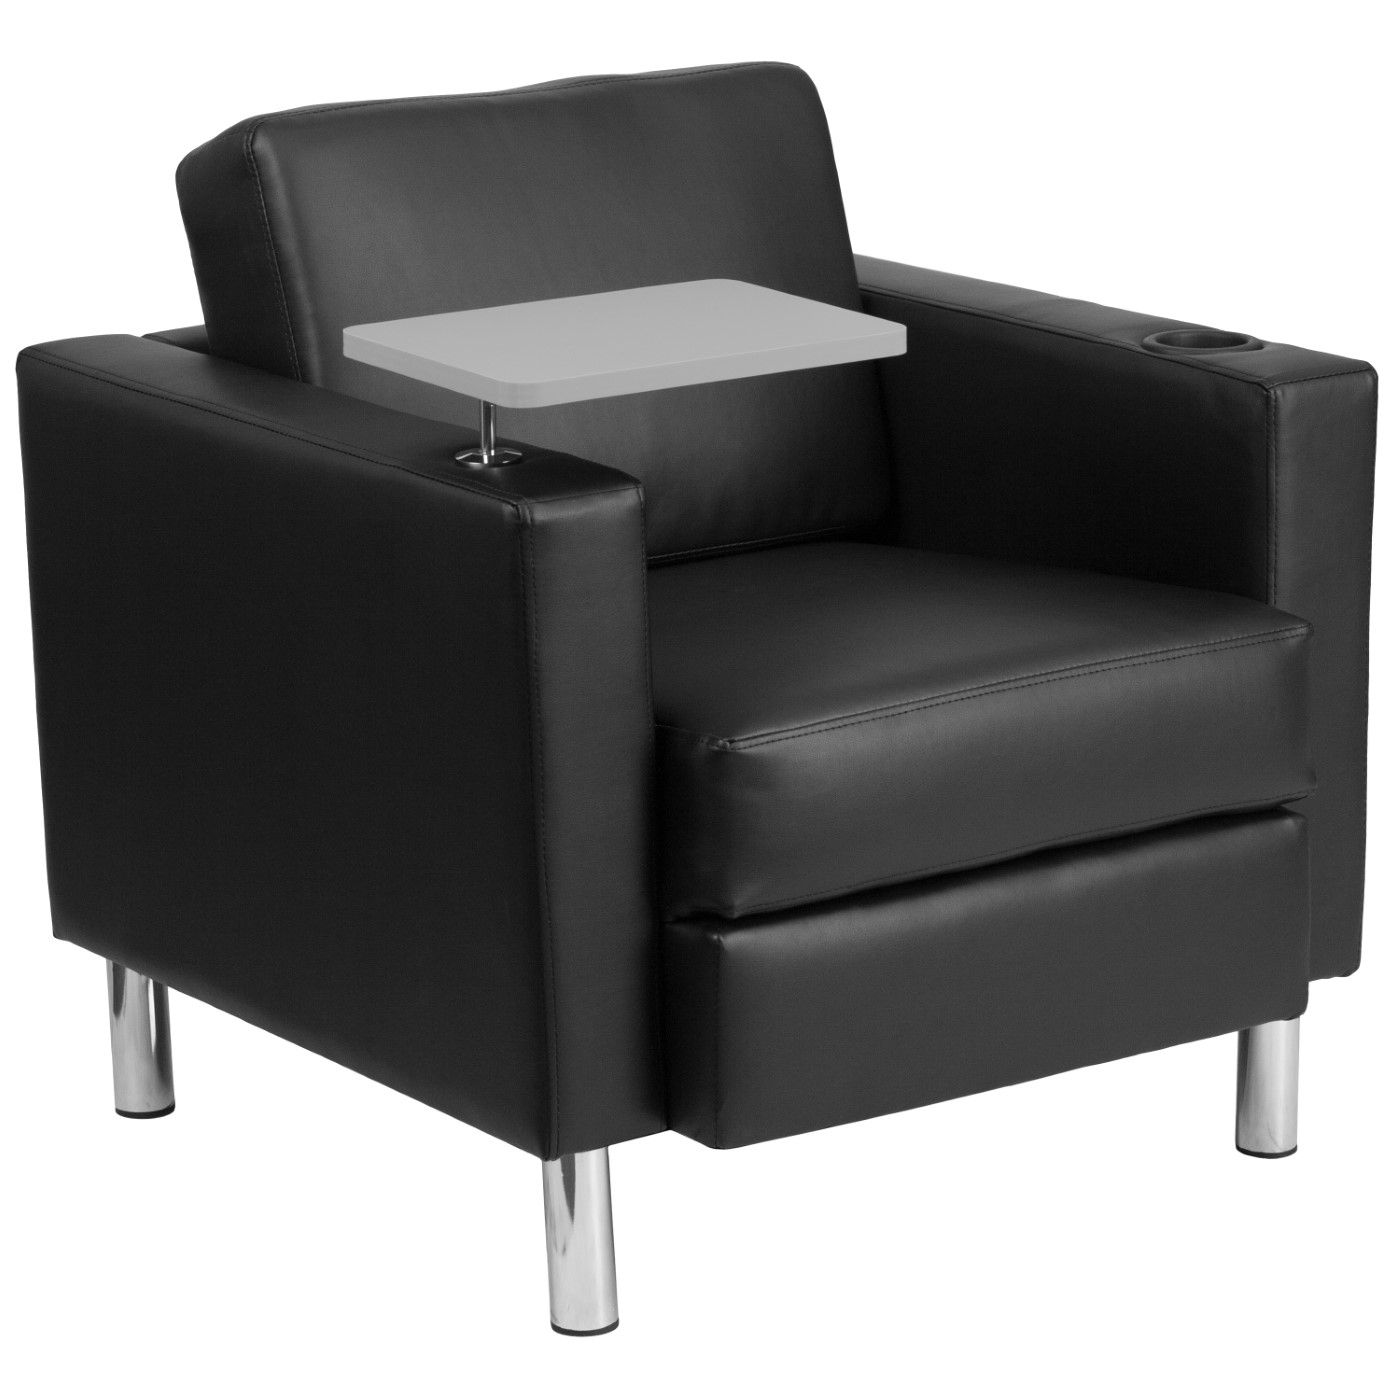 Black LeatherSoft Guest Chair with Tablet Arm, Tall Chrome Legs and Cup Holder